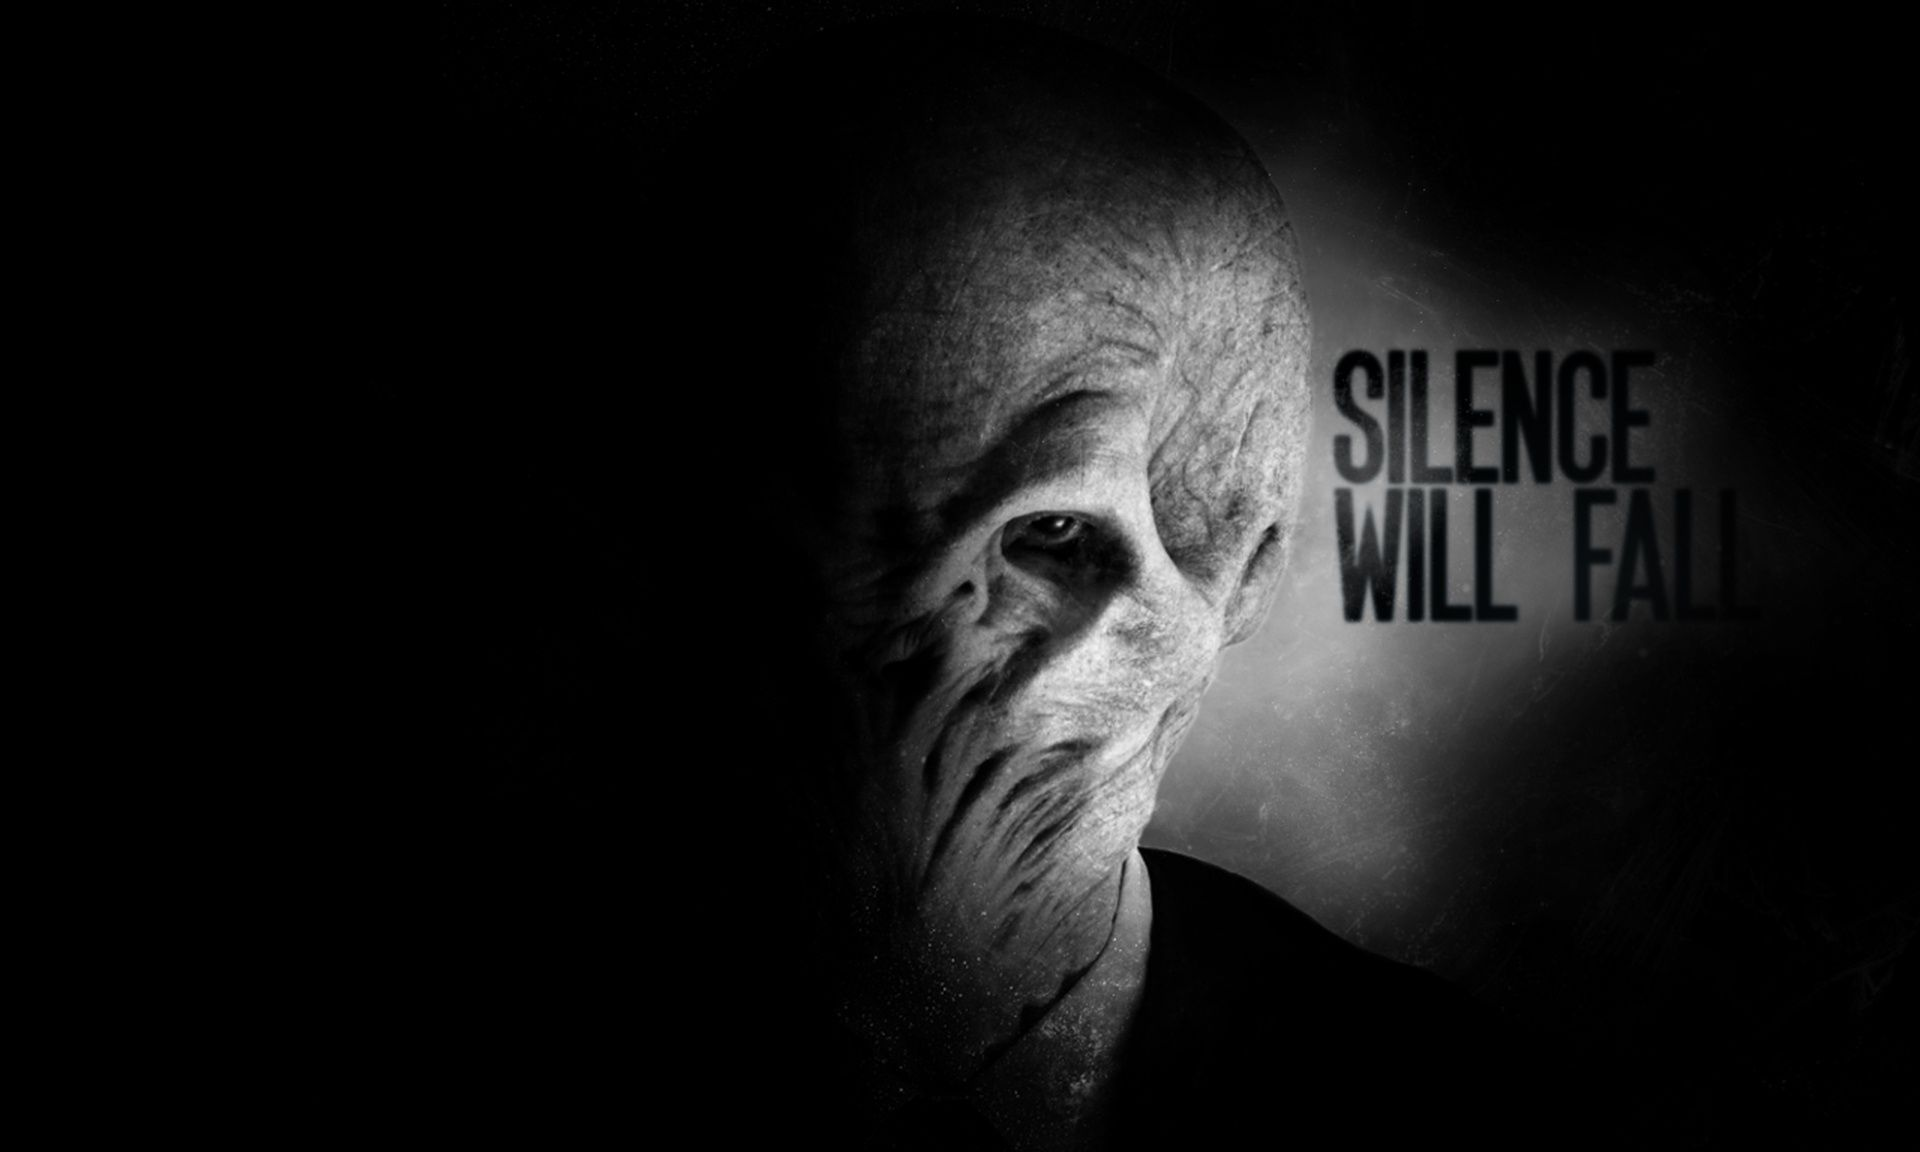 wallpaper dr who silence will fall tv shows desktop wallpapers